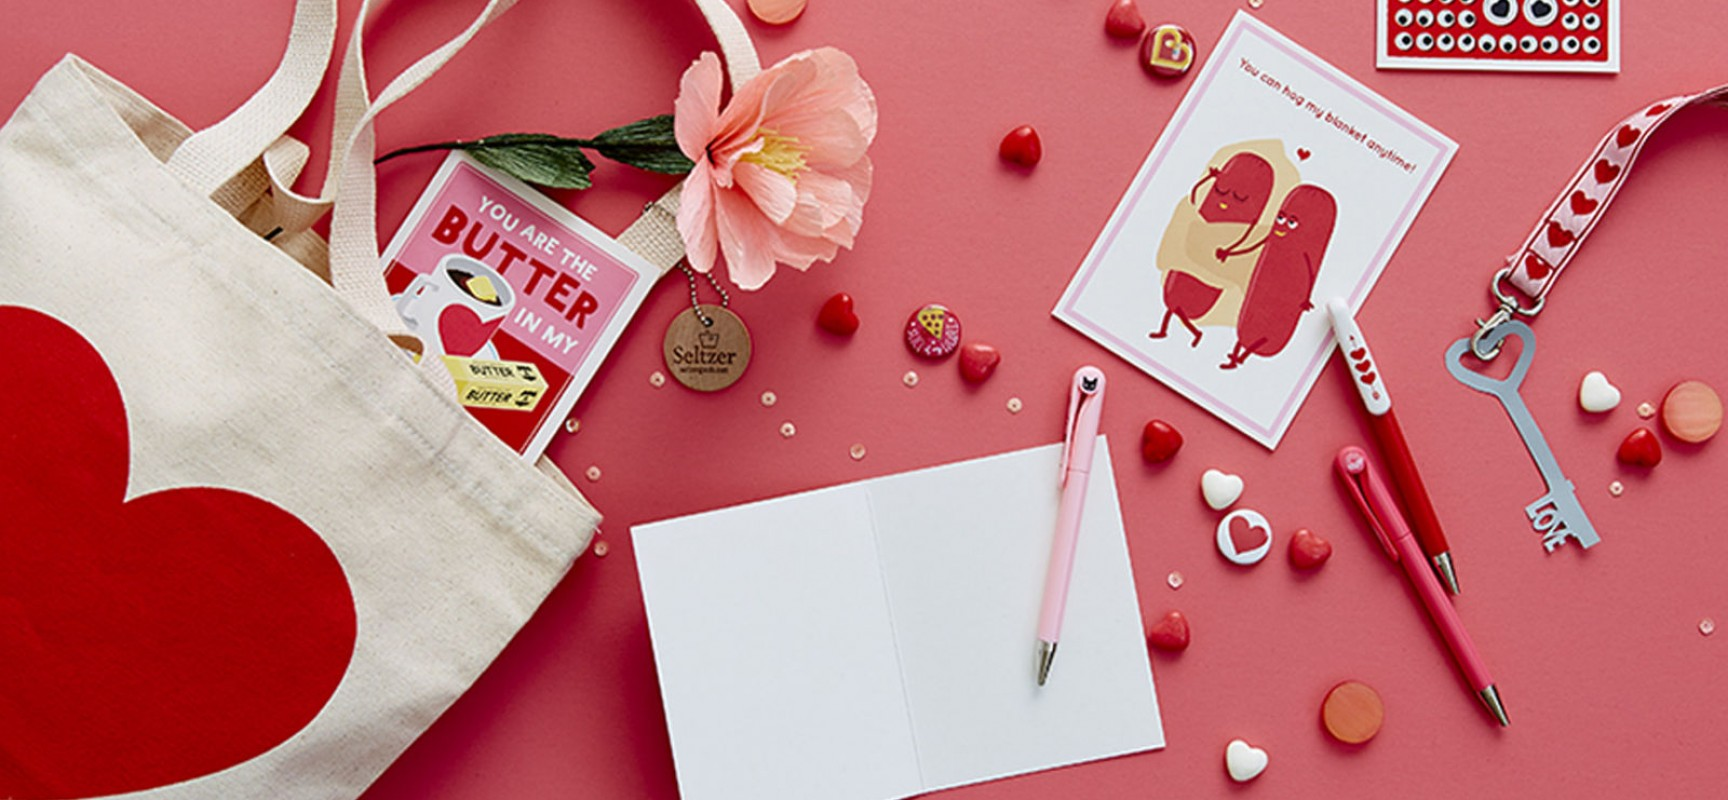 9 Romantic Gift Ideas for a Special Girl